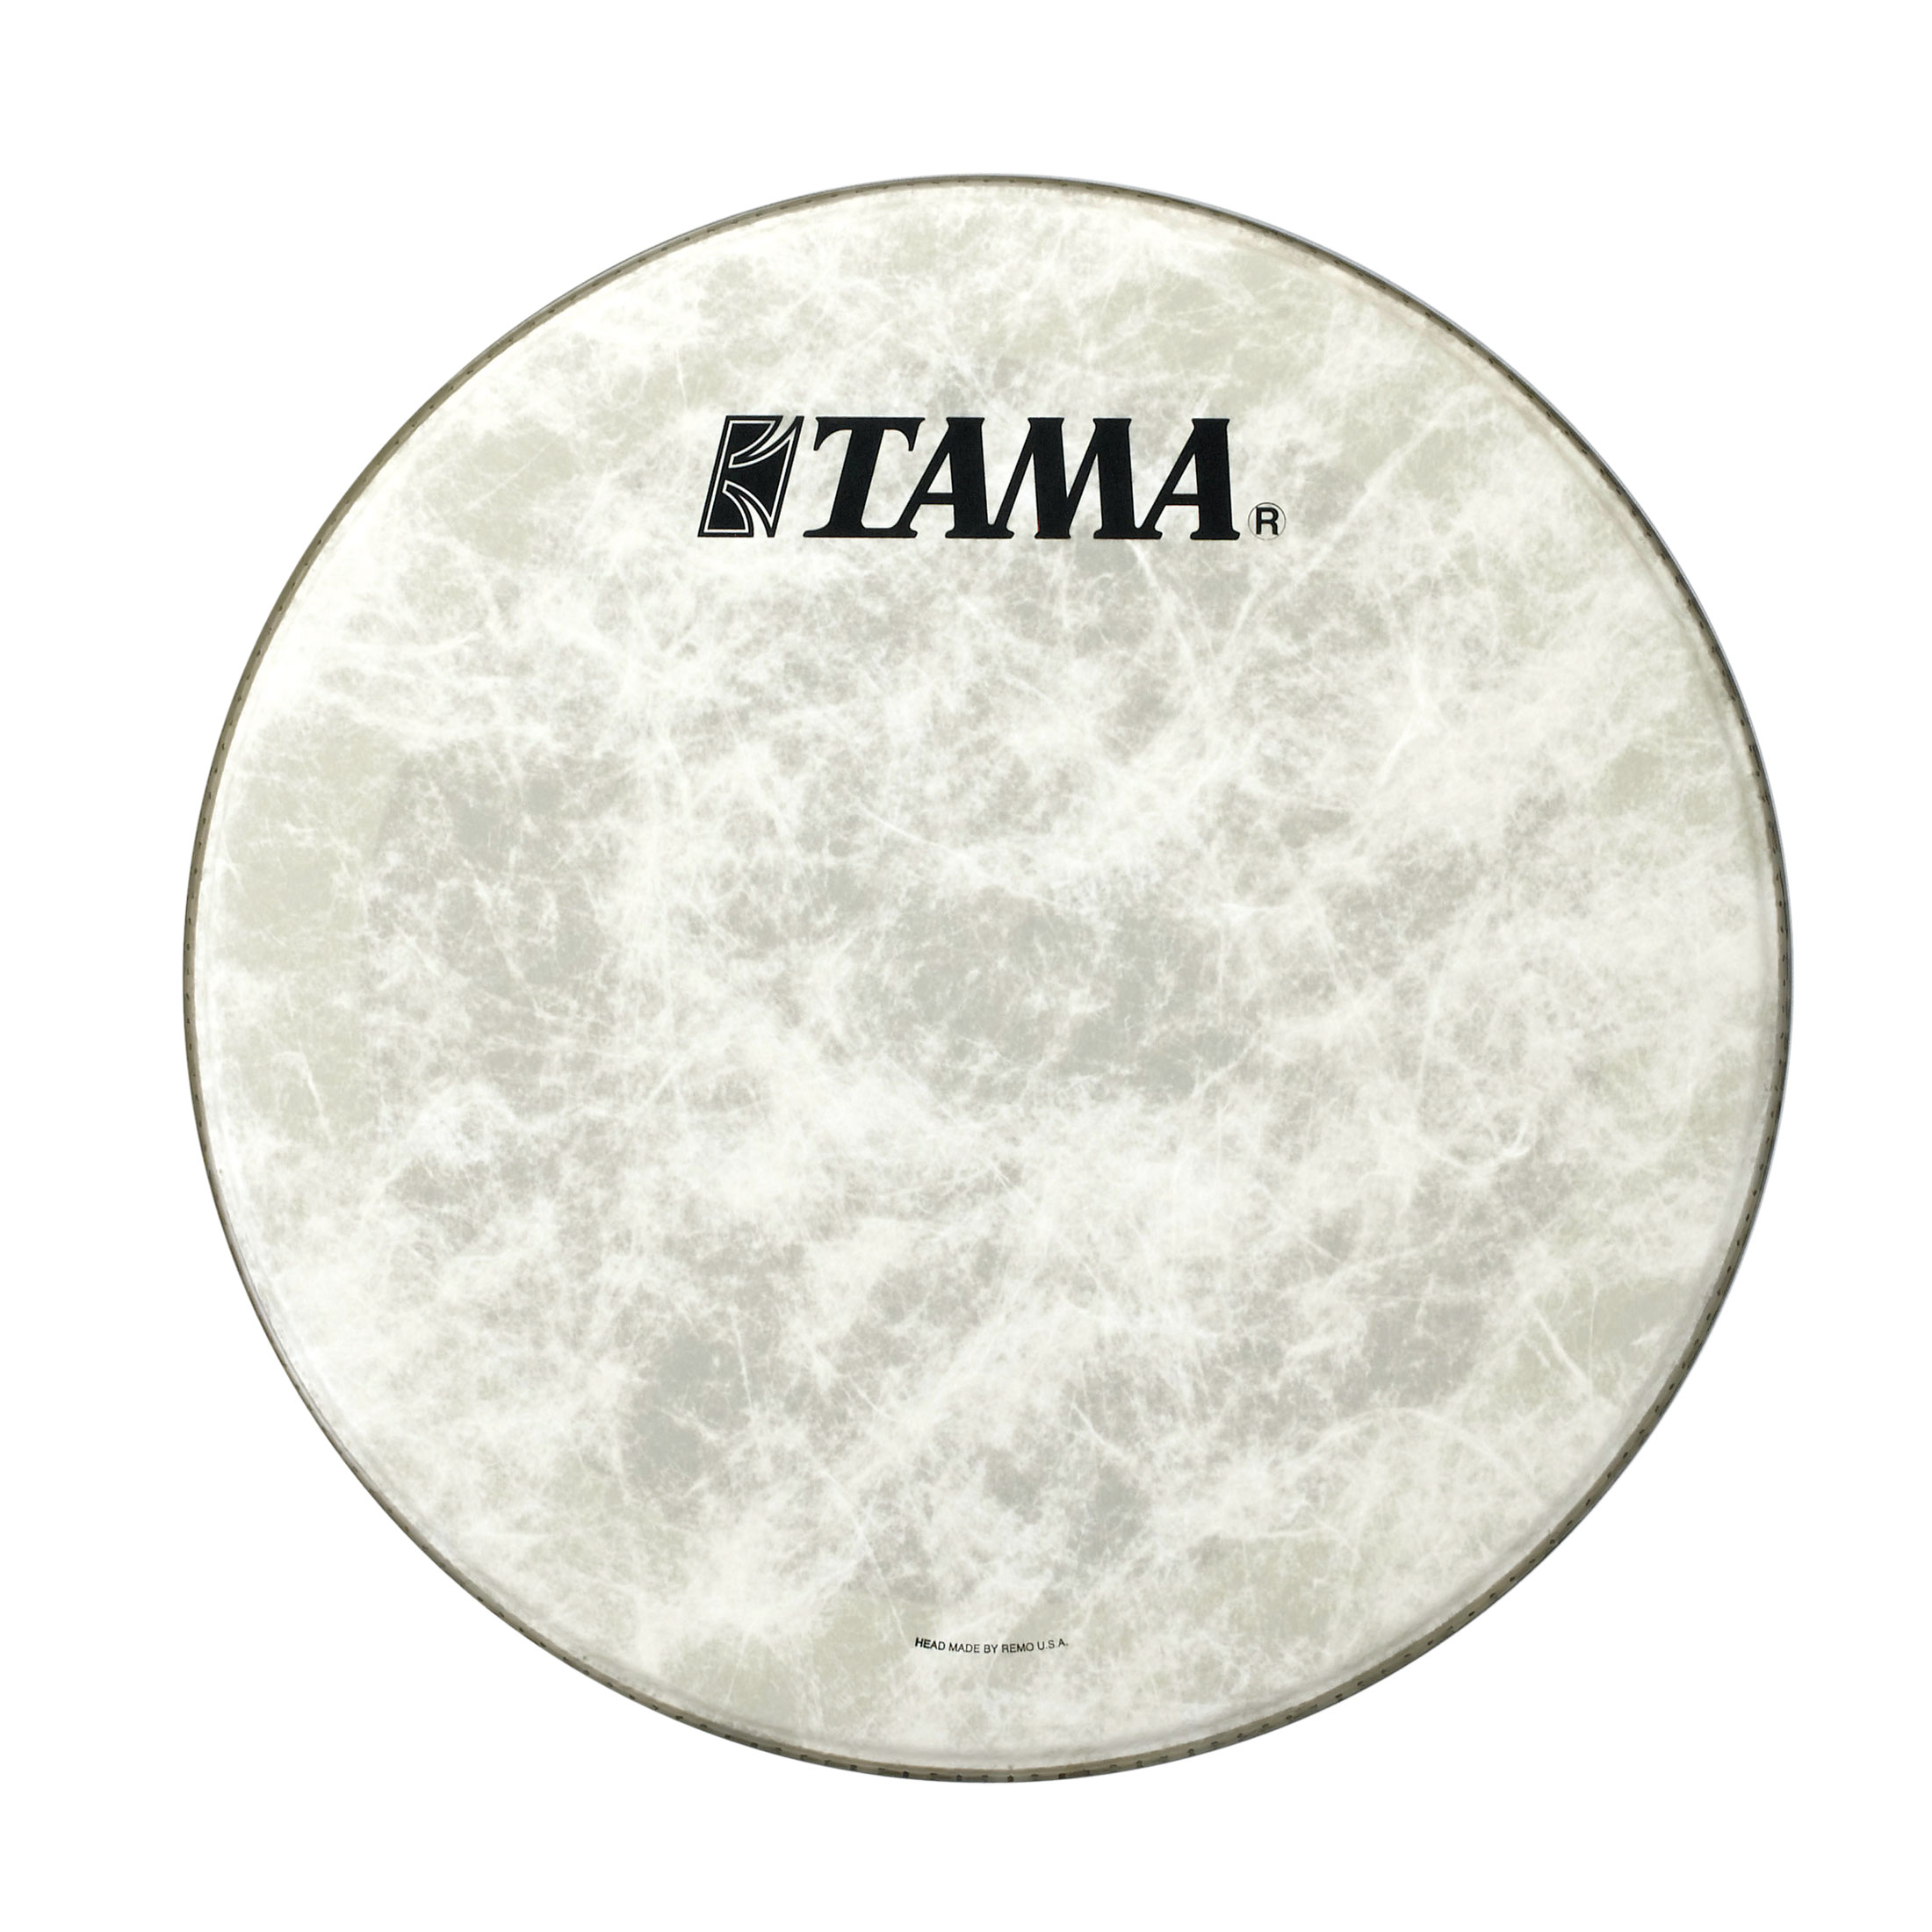 "Tama 22"" Fiberskyn 3 Powerstroke 3 Diplomat Bass Drum Head"